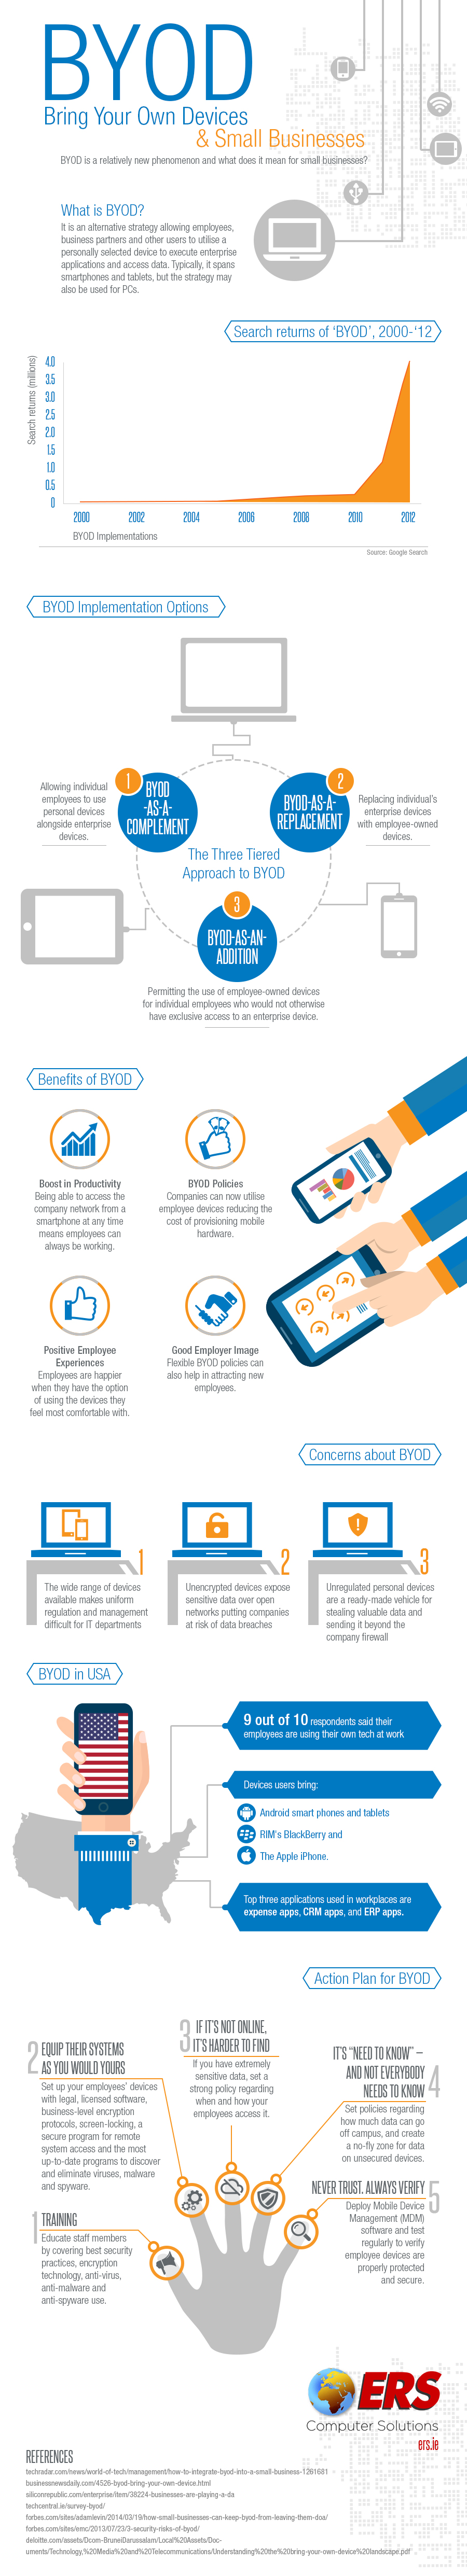 BYOD and Small Business